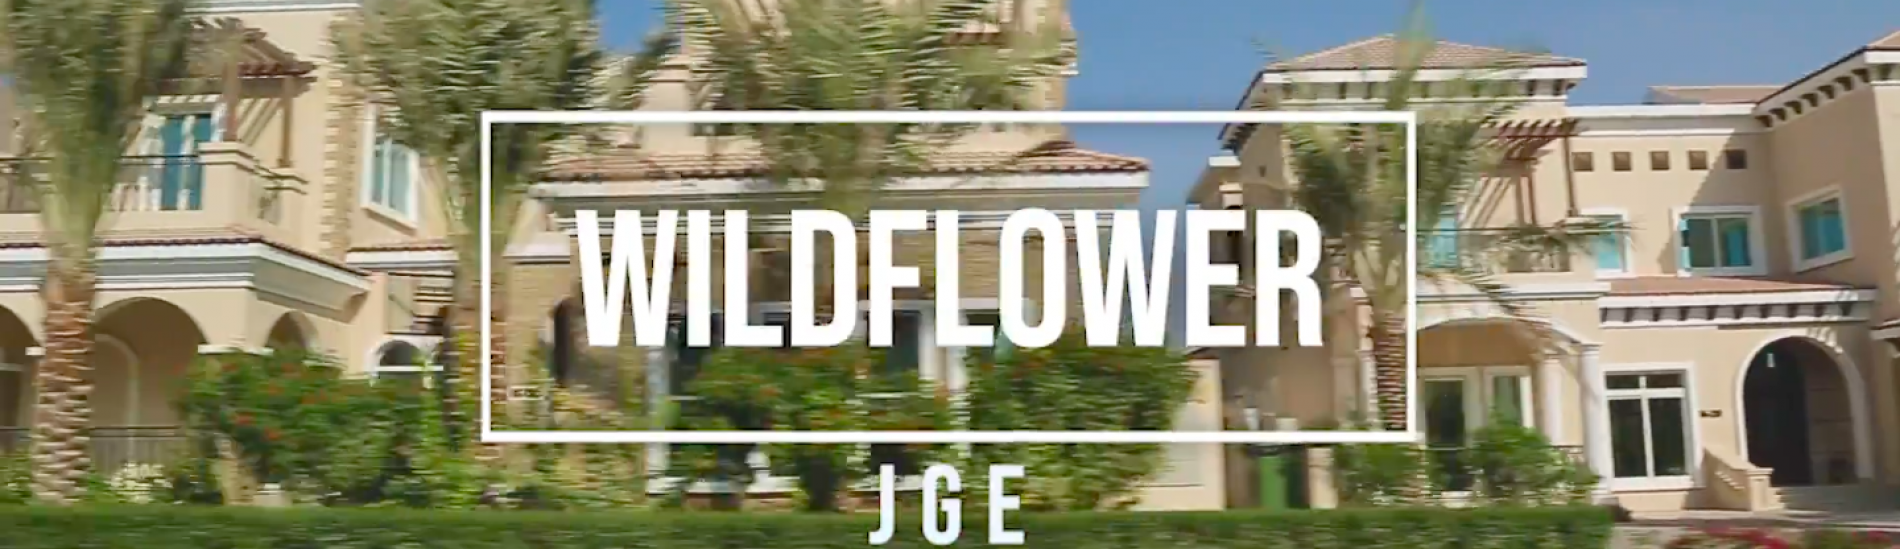 Property Tour - Signature Villa in Wildflower, Jumeirah Golf Estates